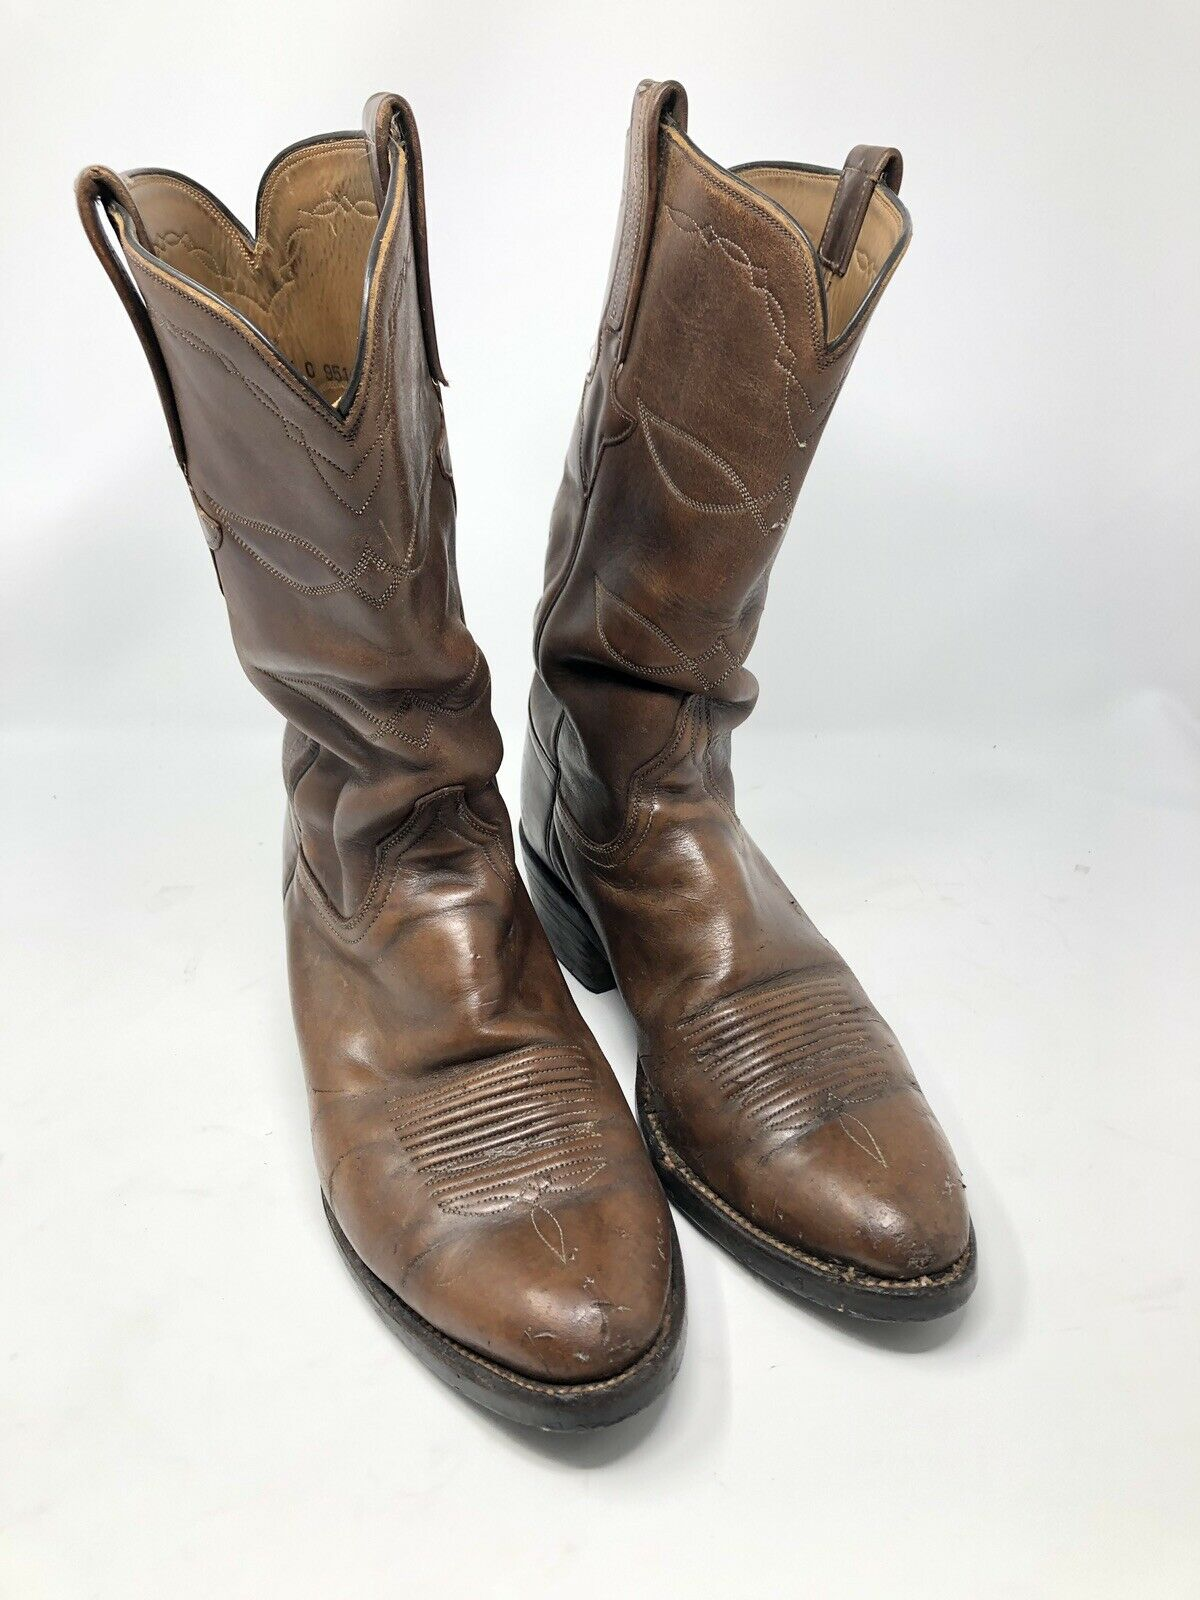 Rare Lucchese Classics Handmade in USA Brown Cowboy Heel Boots 10.5 C L2004